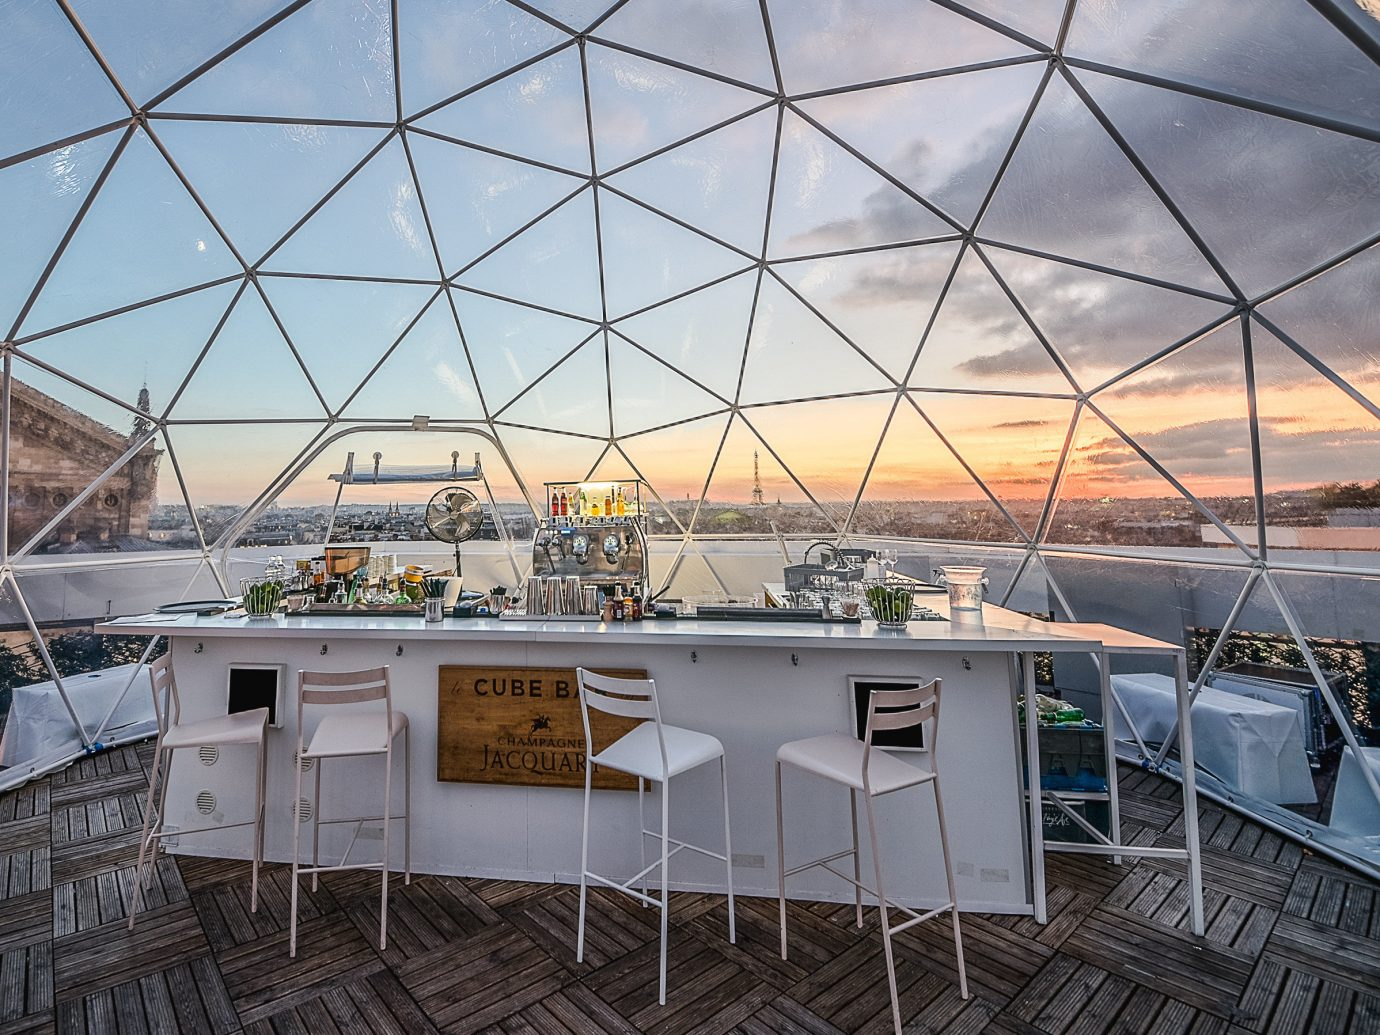 Food + Drink Paris Trip Ideas dome structure Architecture sky roof building daylighting outdoor structure